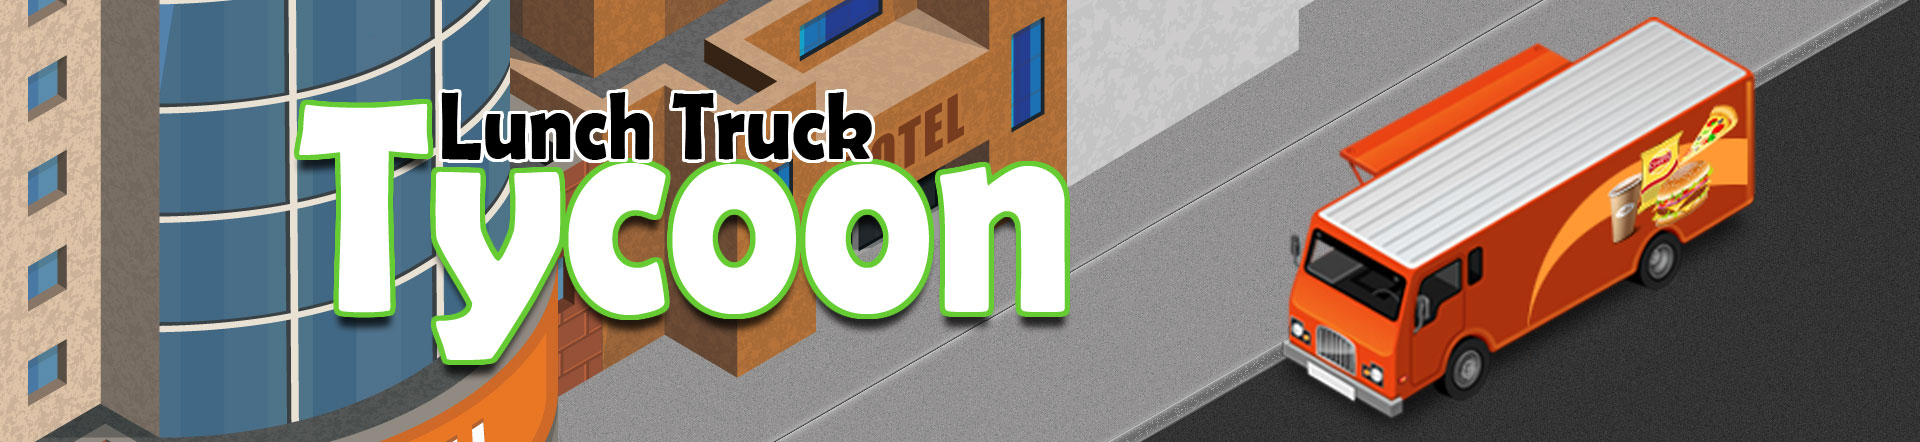 bg_lunch_truck_tycoon